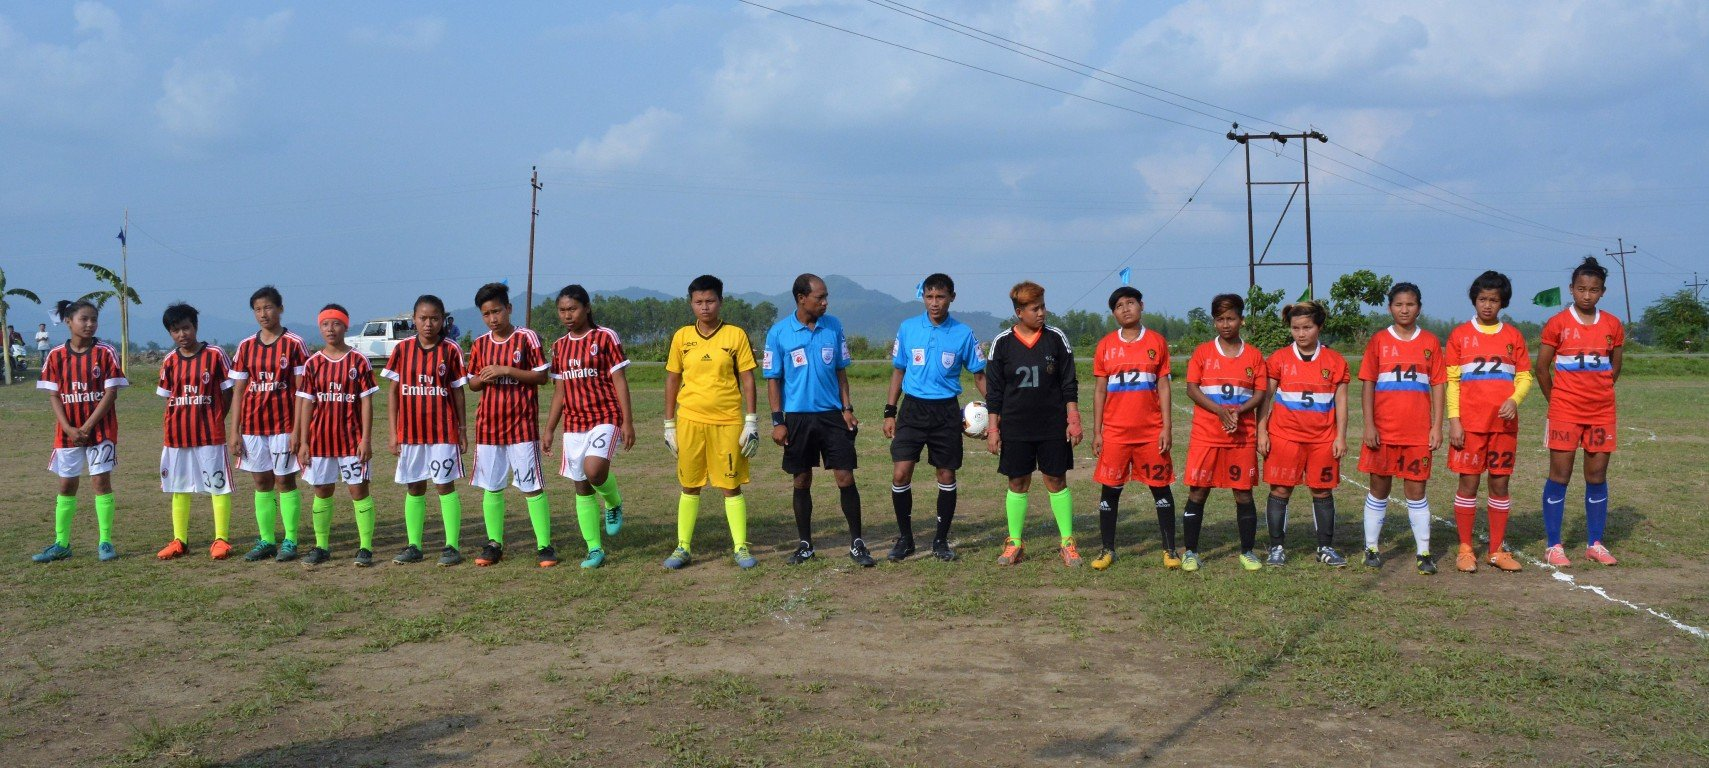 This fourth photograph shows all the players of the two teams ETA and Women Football Association lined up at the start of the match. The ETA players are dressed in maroon and black striped t-shirts, white shorts and light green socks, while their opponents are in a bright orange combination. The ETA goalie is in an all-yellow dress, while Women Football Association's goalie is in an all-black one. In the centre are the two referees (in blue t-shirts and black shorts). To their right are the ETA team and the Women Football Association are on the other side. The ETA t-shirts carry the logo of Emirates, the team's sponsors. The background is an idyllic countryside with trees, hills and an open blue sky, marred only slightly by overhead power lines. A handful of spectators and soldiers can also be seen on the sidelines of the play ground. Photo credit: ETA